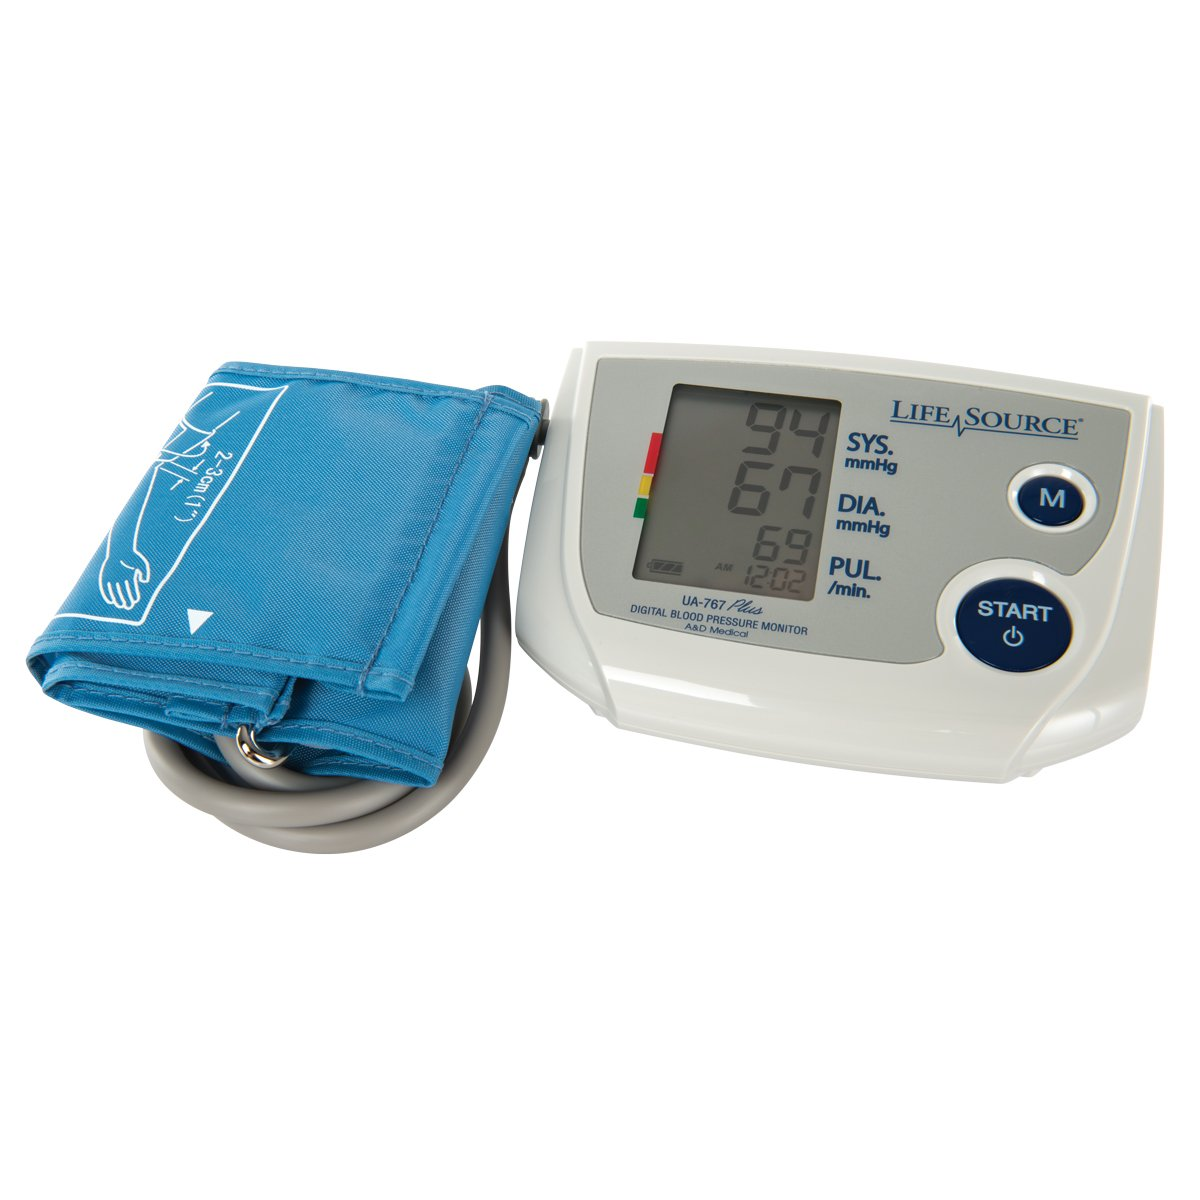 """A & D Engineering Lifesource W64603 One Step Auto Inflate Large Cuff with Memory Bp Monitor, Grade: 1 to 12, Age: 8"""" Height, 4"""" Wide, 5.25"""" Length"""